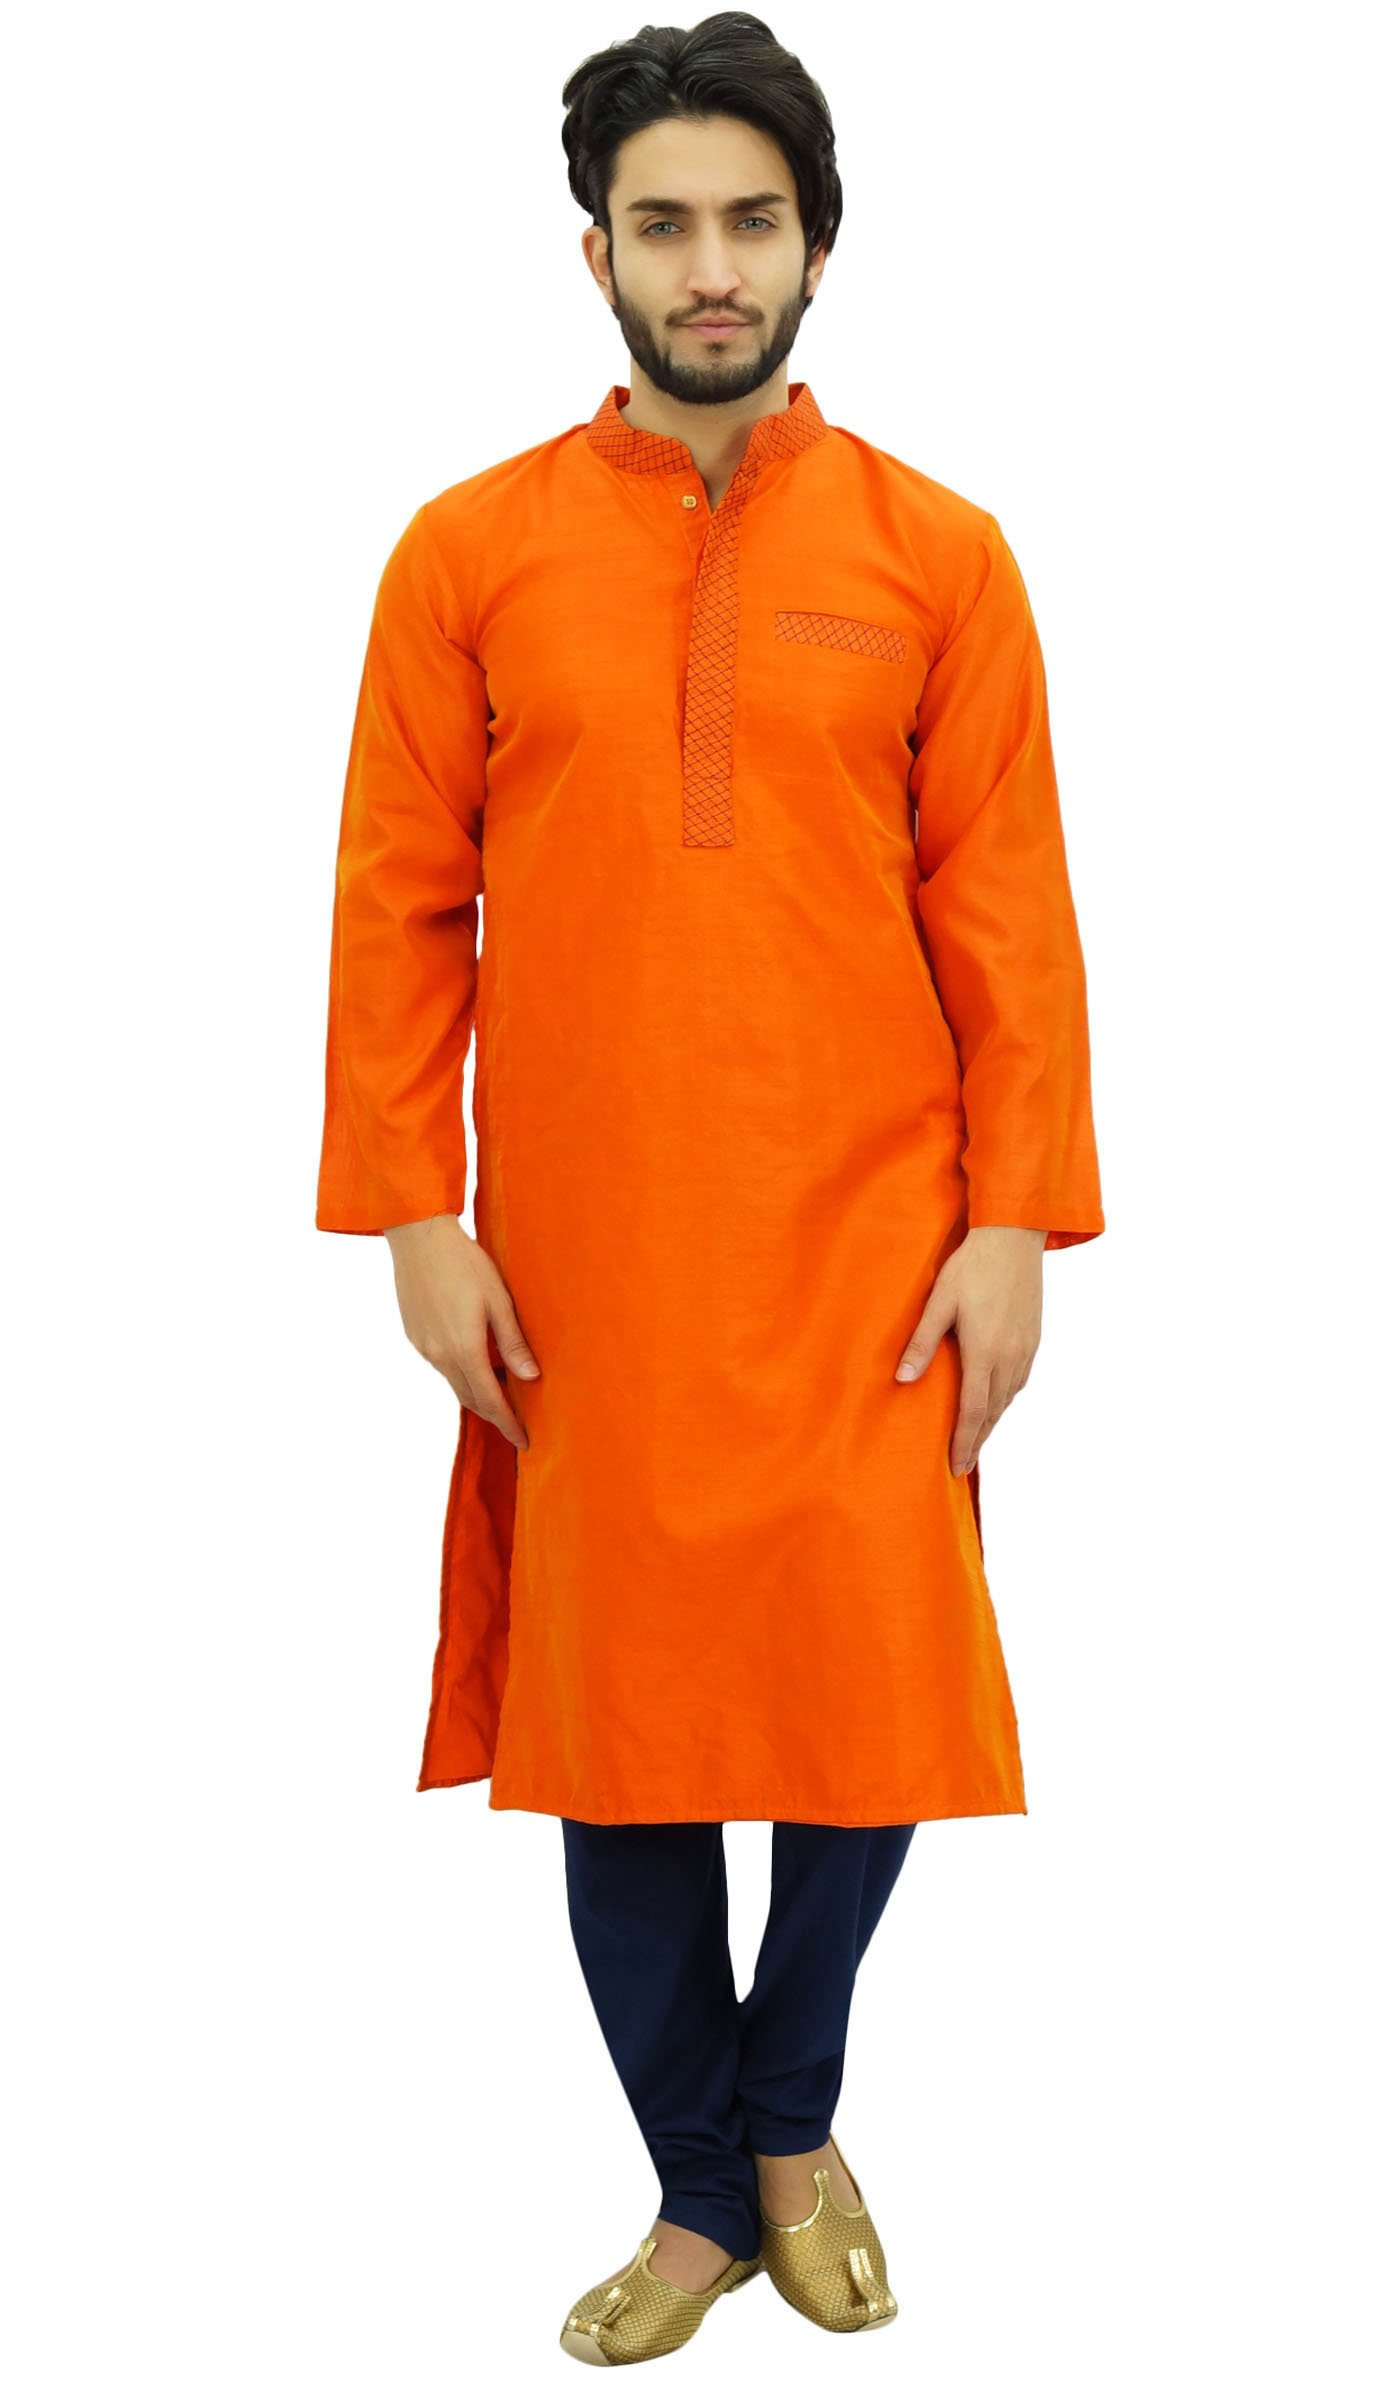 Atasi Designer Indian Ethnic Men's Orange Kurta Pyjama Long Dupion Shirt-XXXL